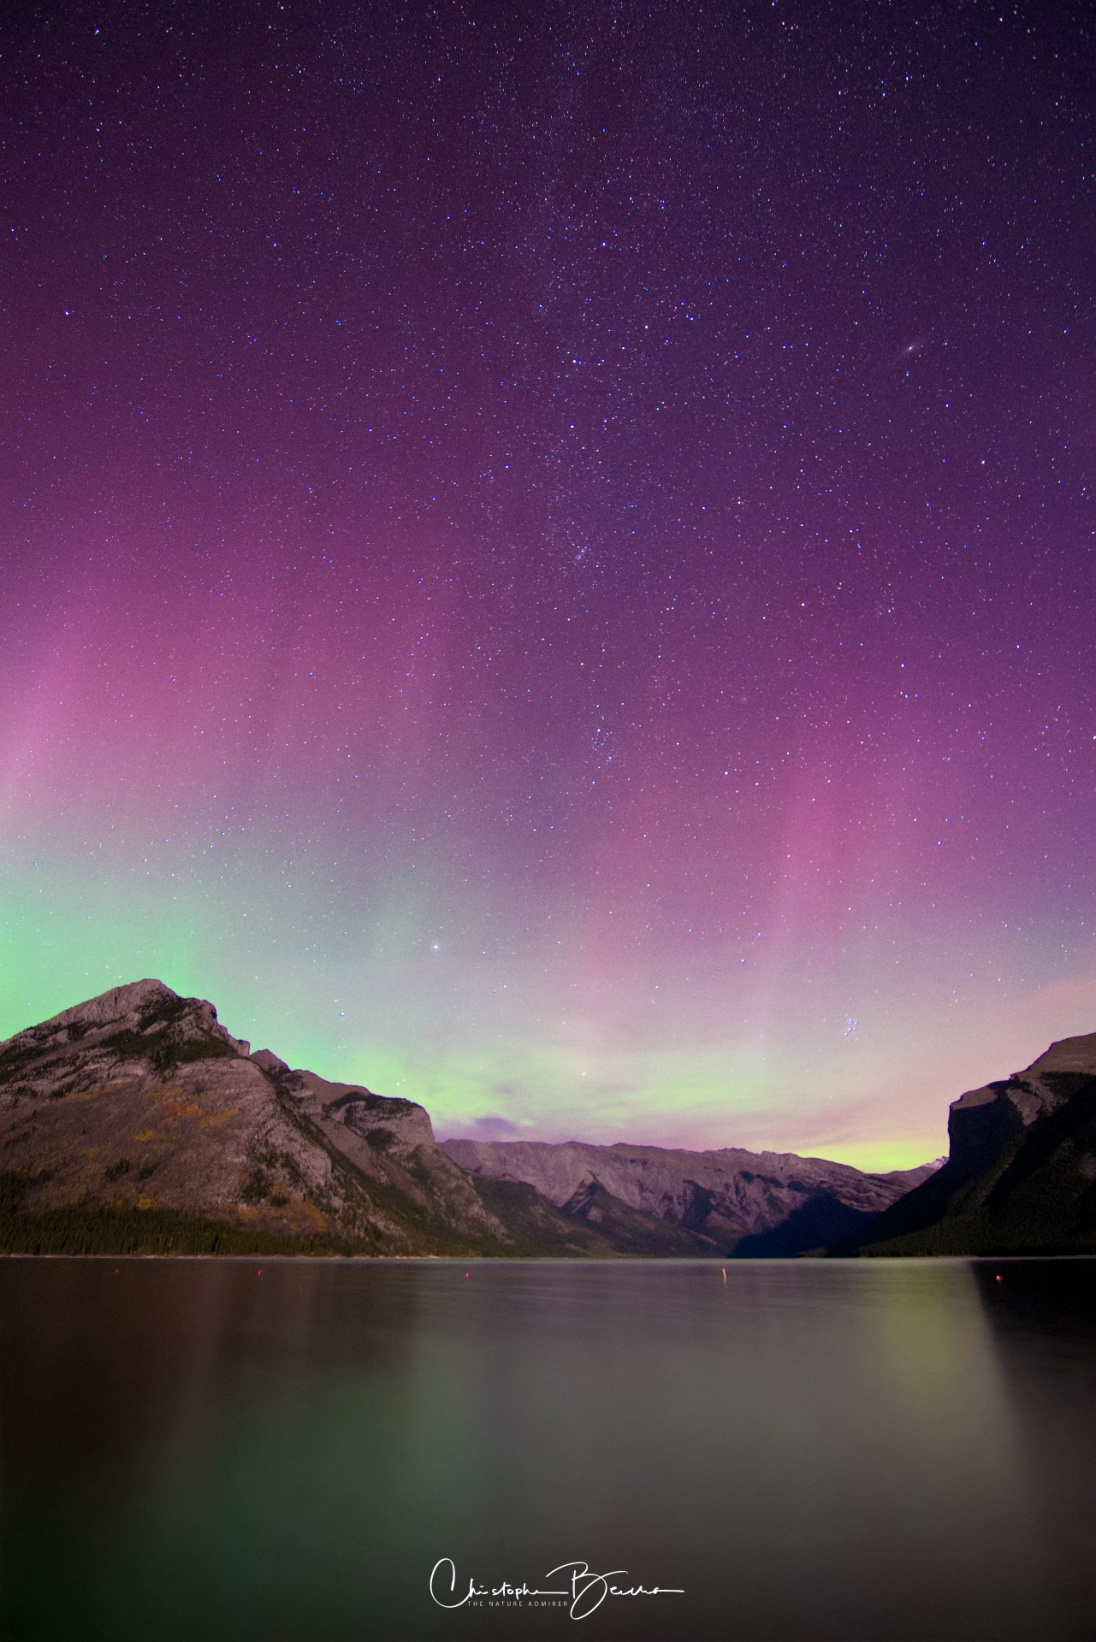 On Wednesday 27th, we headed out to Minnewanka Lake at 9:00 pm to catch the aurora. Its playful colors were indeed captured by our cameras, having Minnewanka Lake as the scenery to compose our pictures. Lots of other photographers and people shared the moment with us.